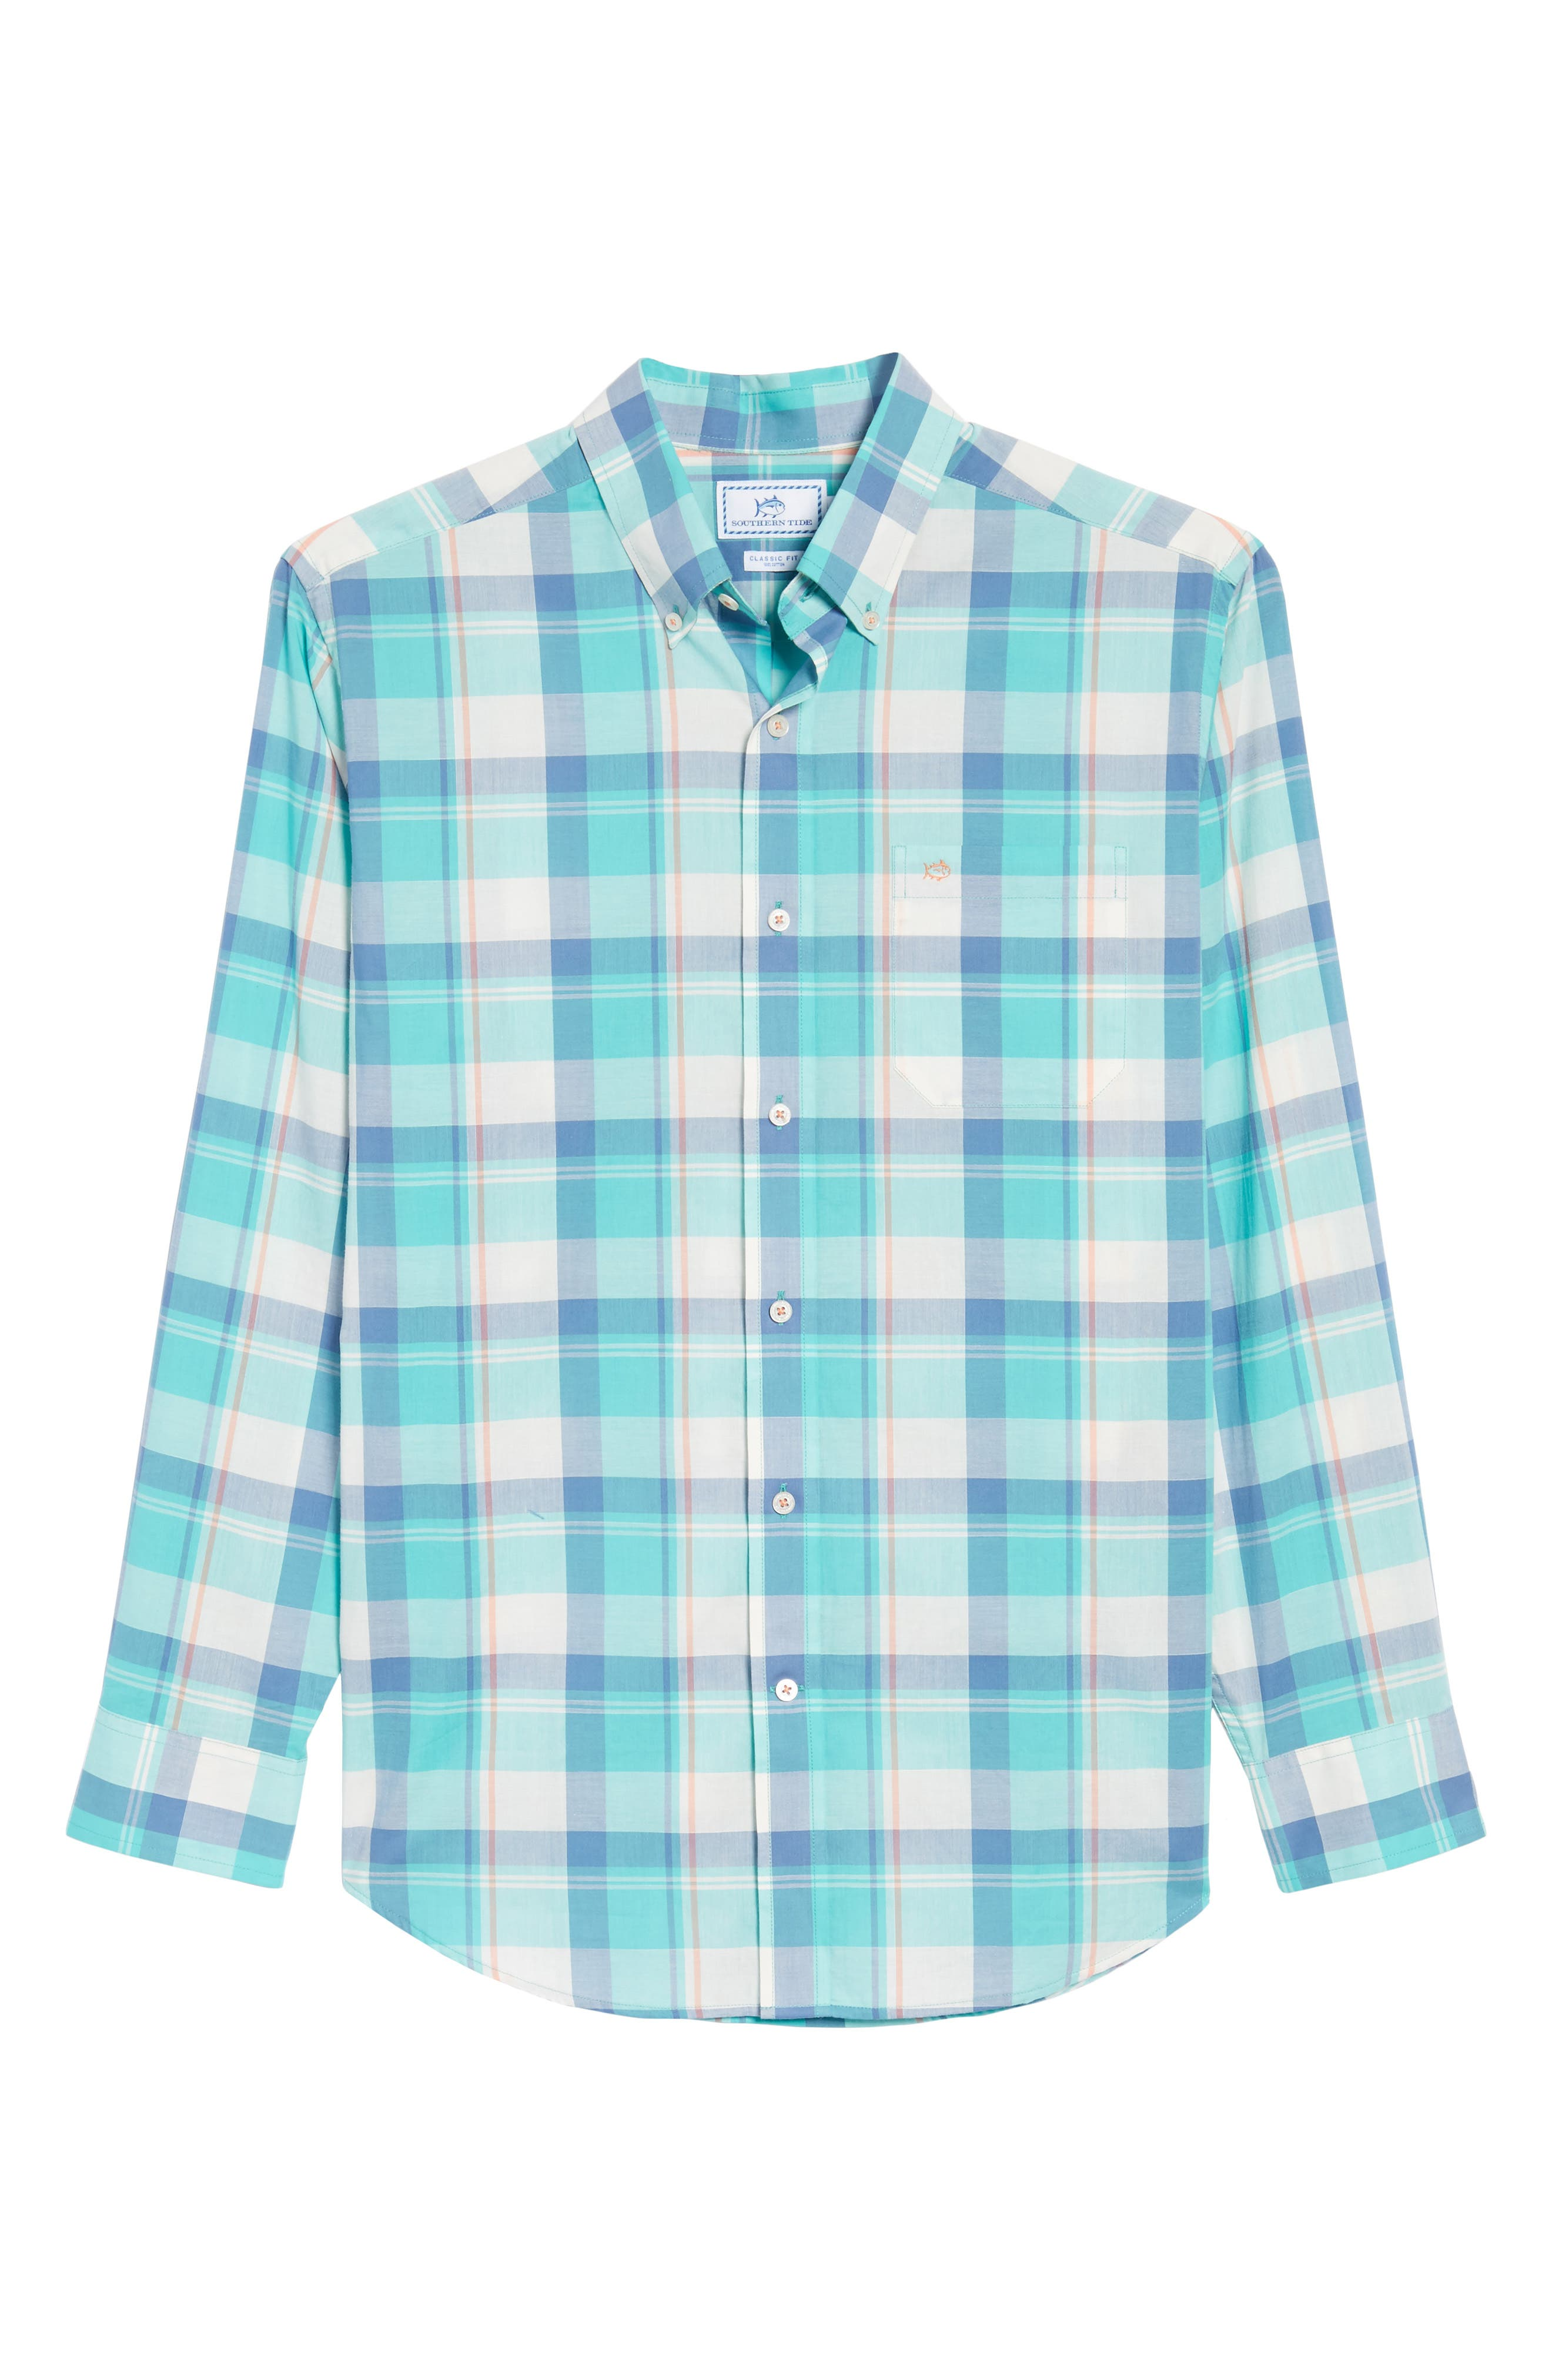 Green Cay Plaid Sport Shirt,                             Alternate thumbnail 6, color,